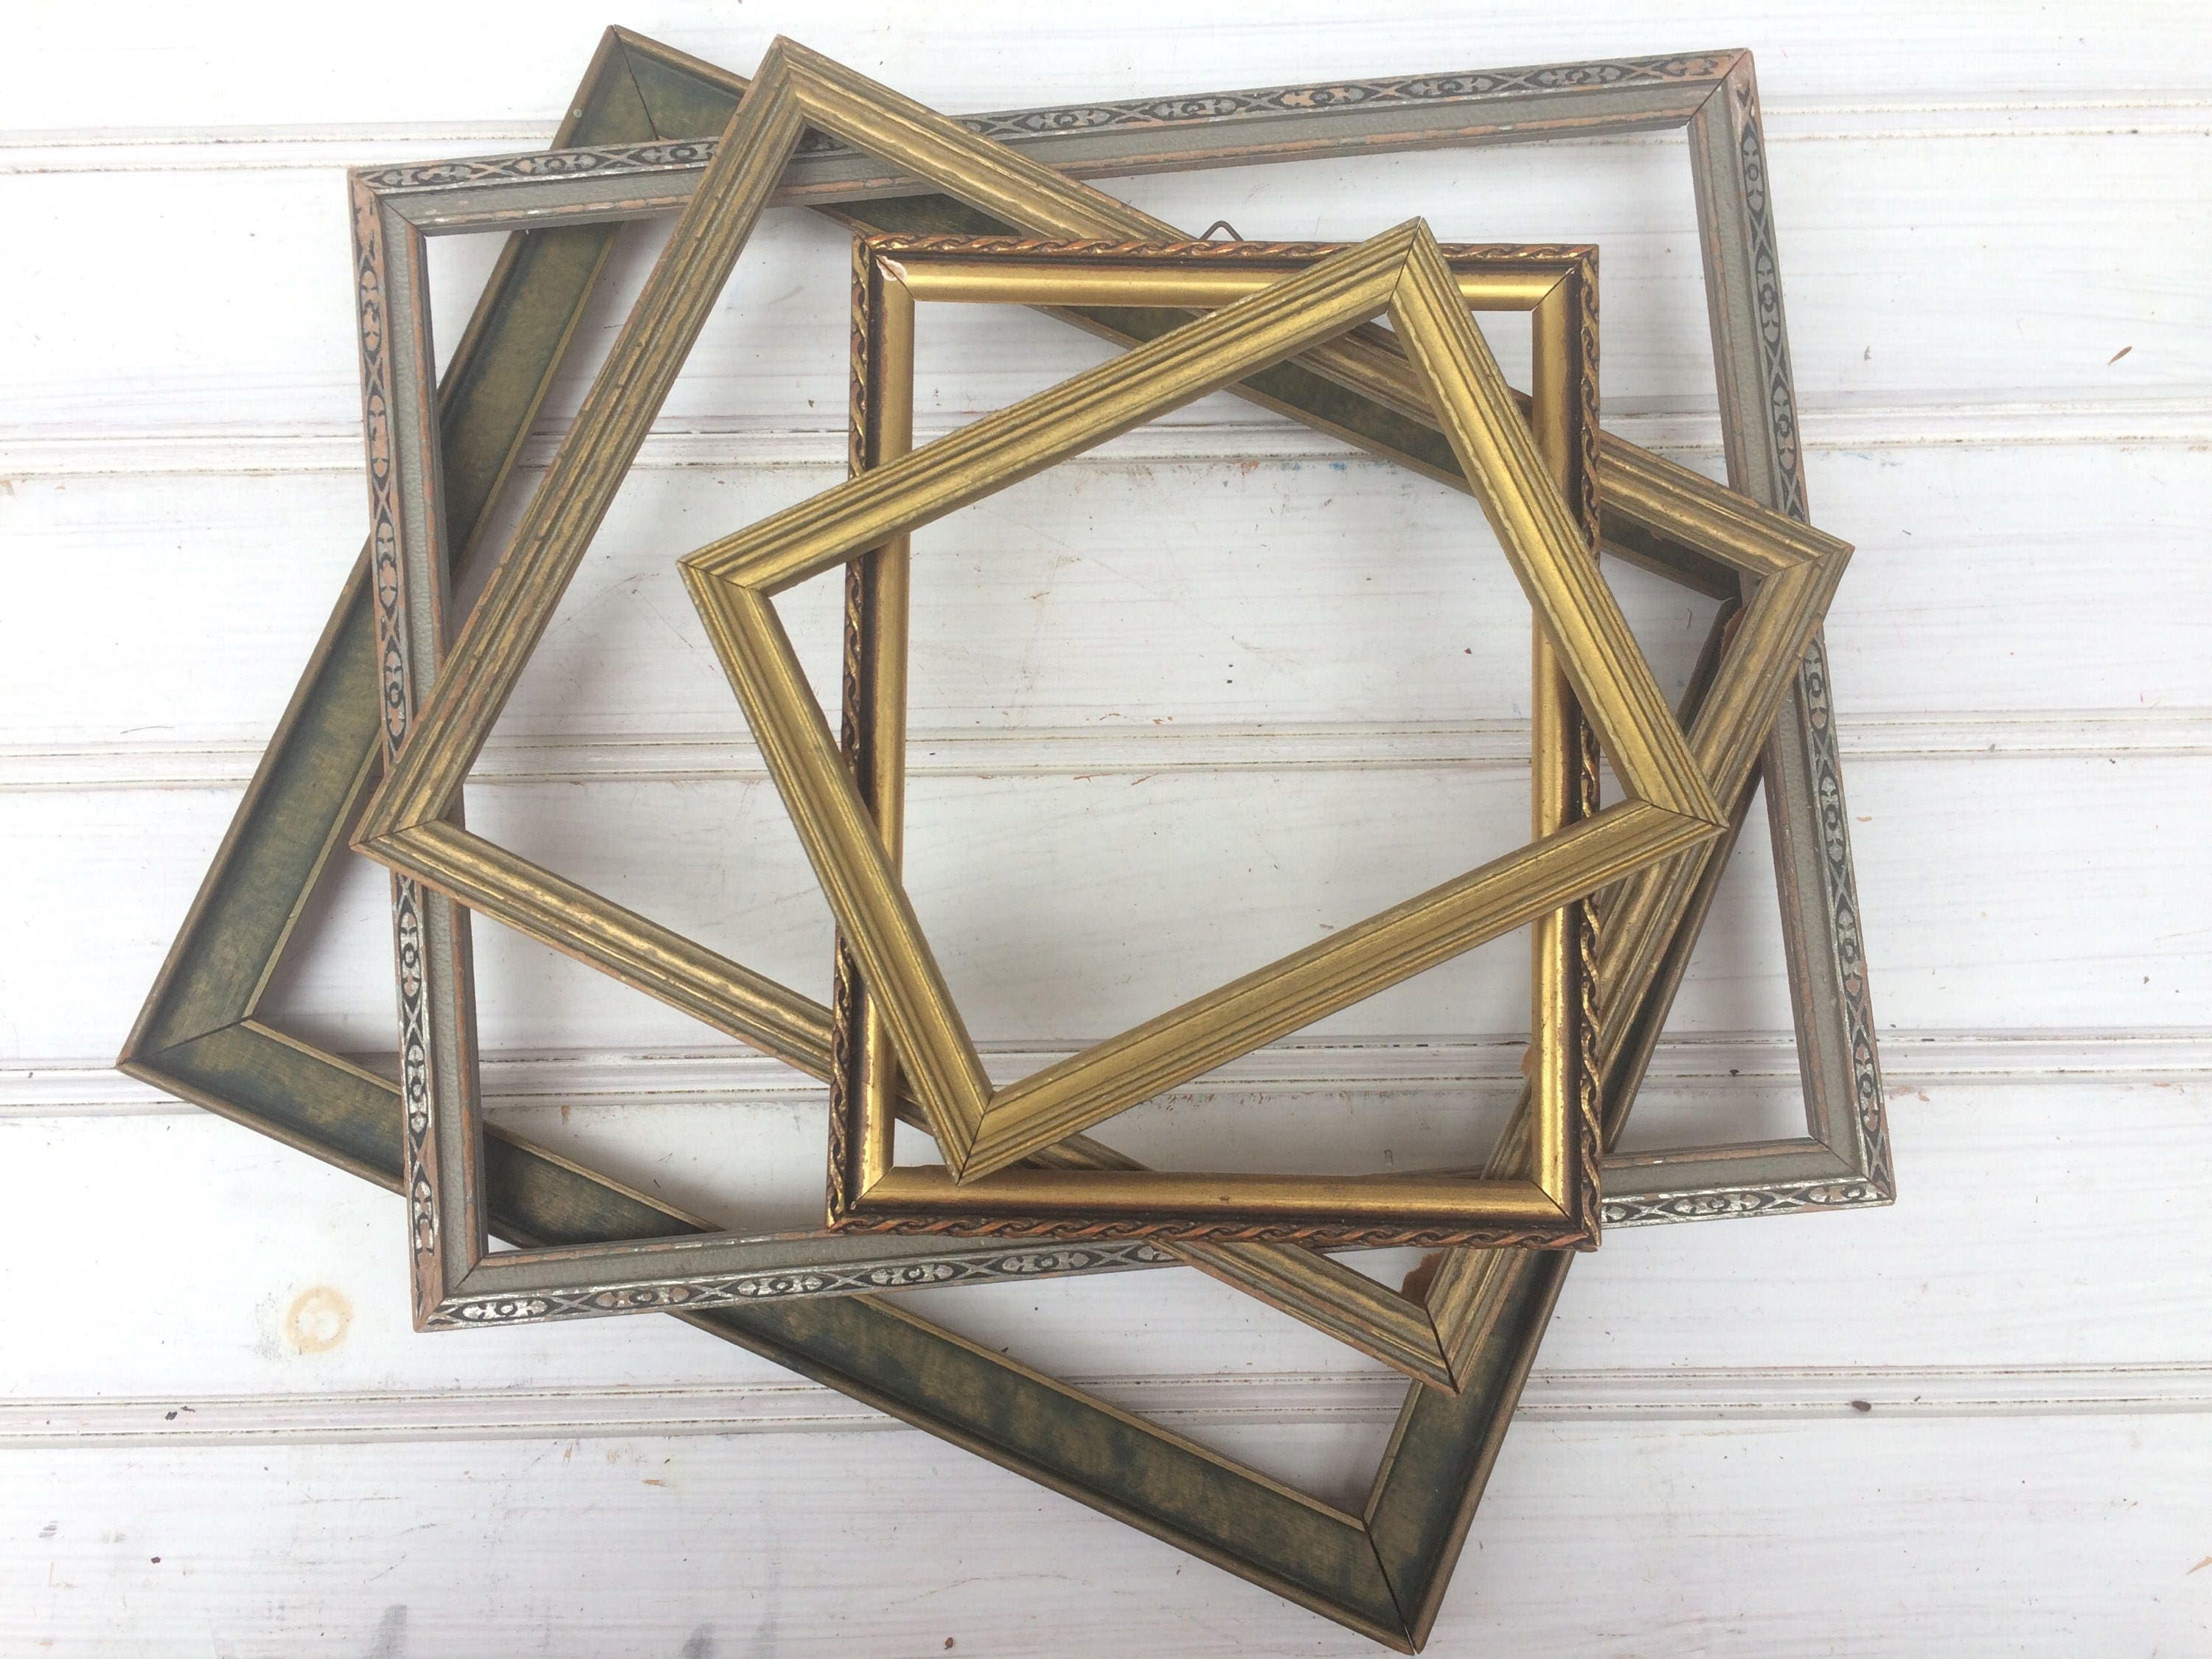 FIVE Vintage Frames, Gallery Wall, no glass, wood frames, gilded ...